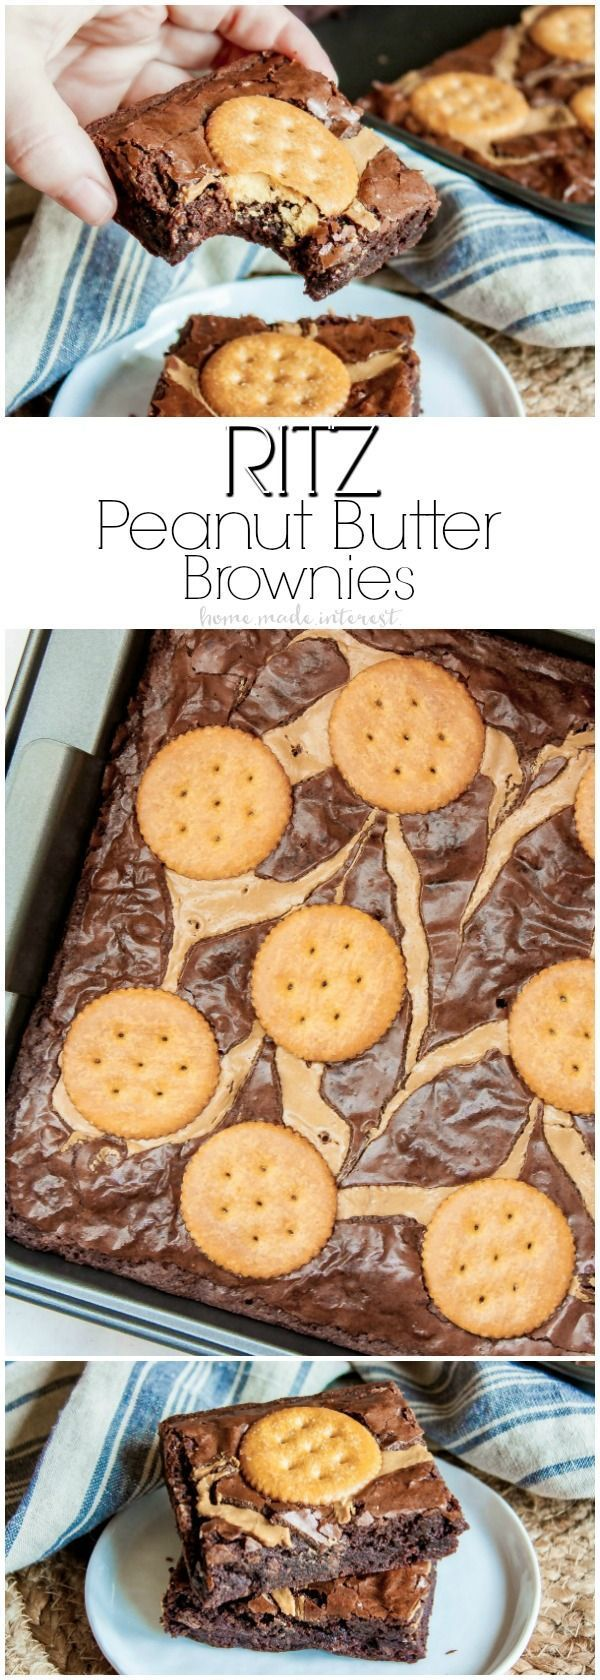 RITZ Peanut Butter Brownies | This sweet and salty dessert recipe is super easy to make and so good!   There will be live demos with RITZ crackers and Peter Pan®️️️️ Creamy Peanut Butter in Walmart on 4/15! Make sure you stop by to get a free recipe handout with coupon, and spin for a chance to win a Walmart gift card or a free box of RITZ! #RITZpiration #ad